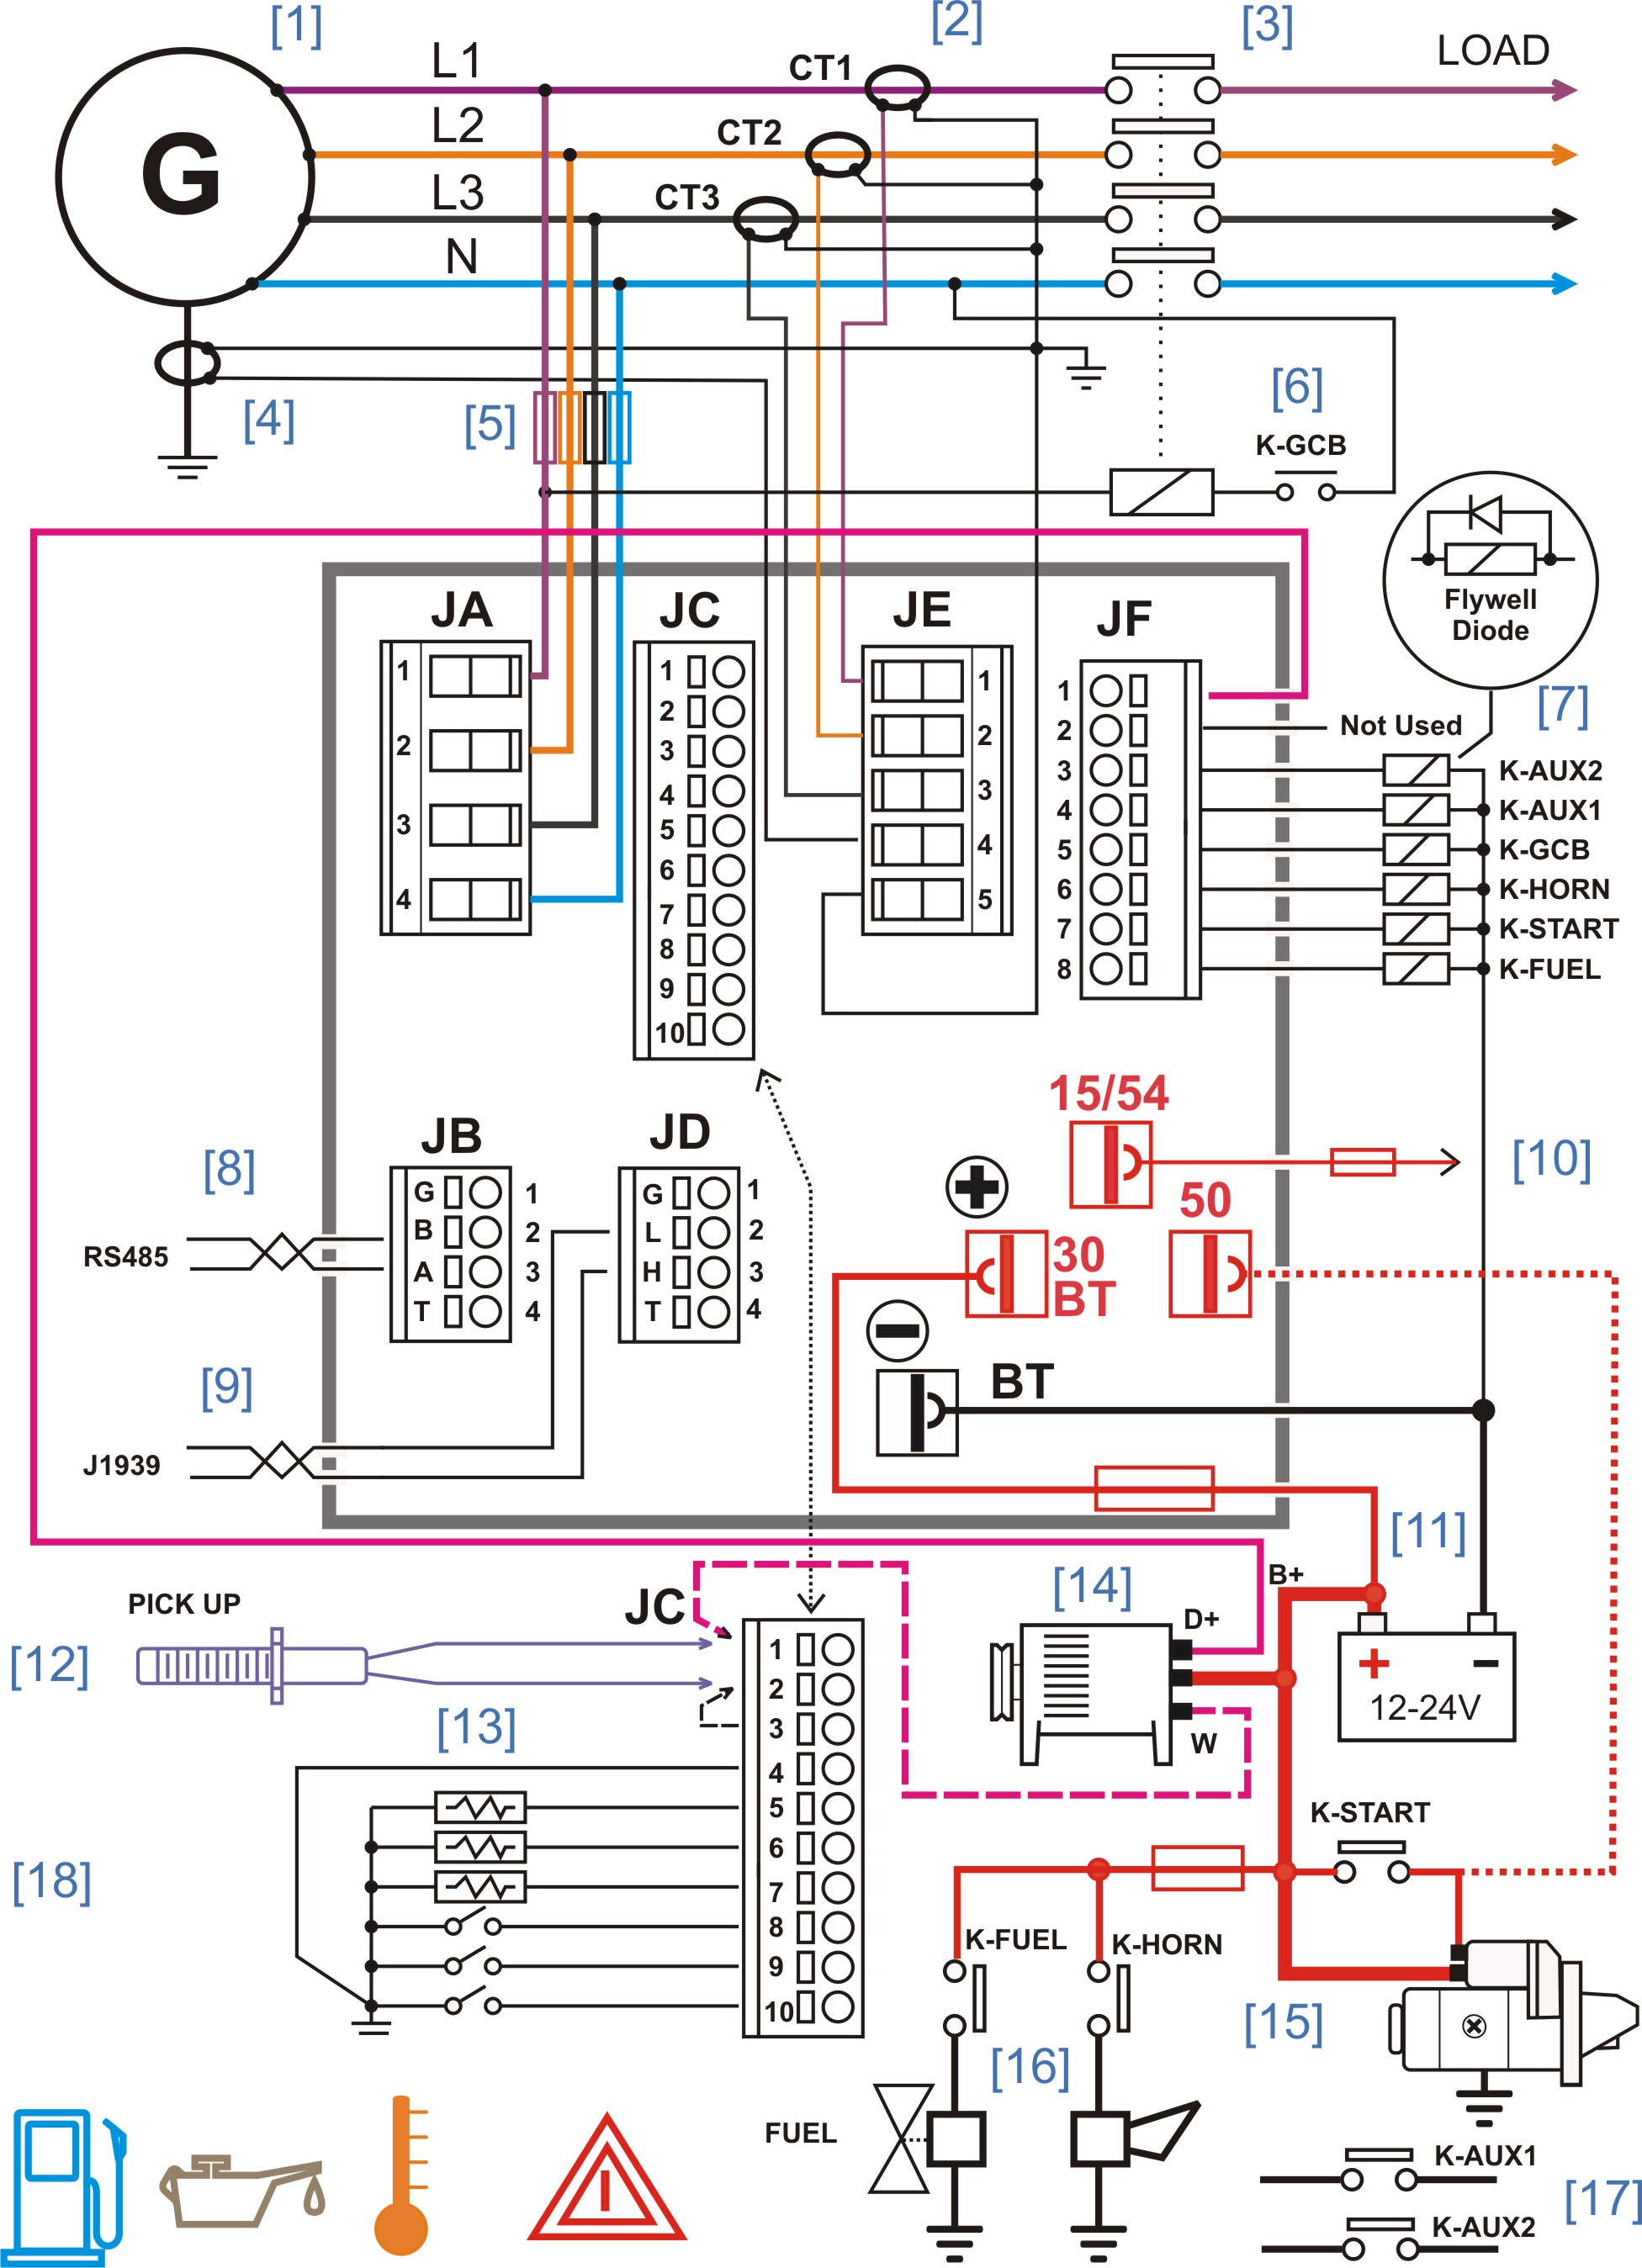 medium resolution of  equinox ke wiring diagram on 2005 equinox wiring diagram chevy equinox wiring diagram